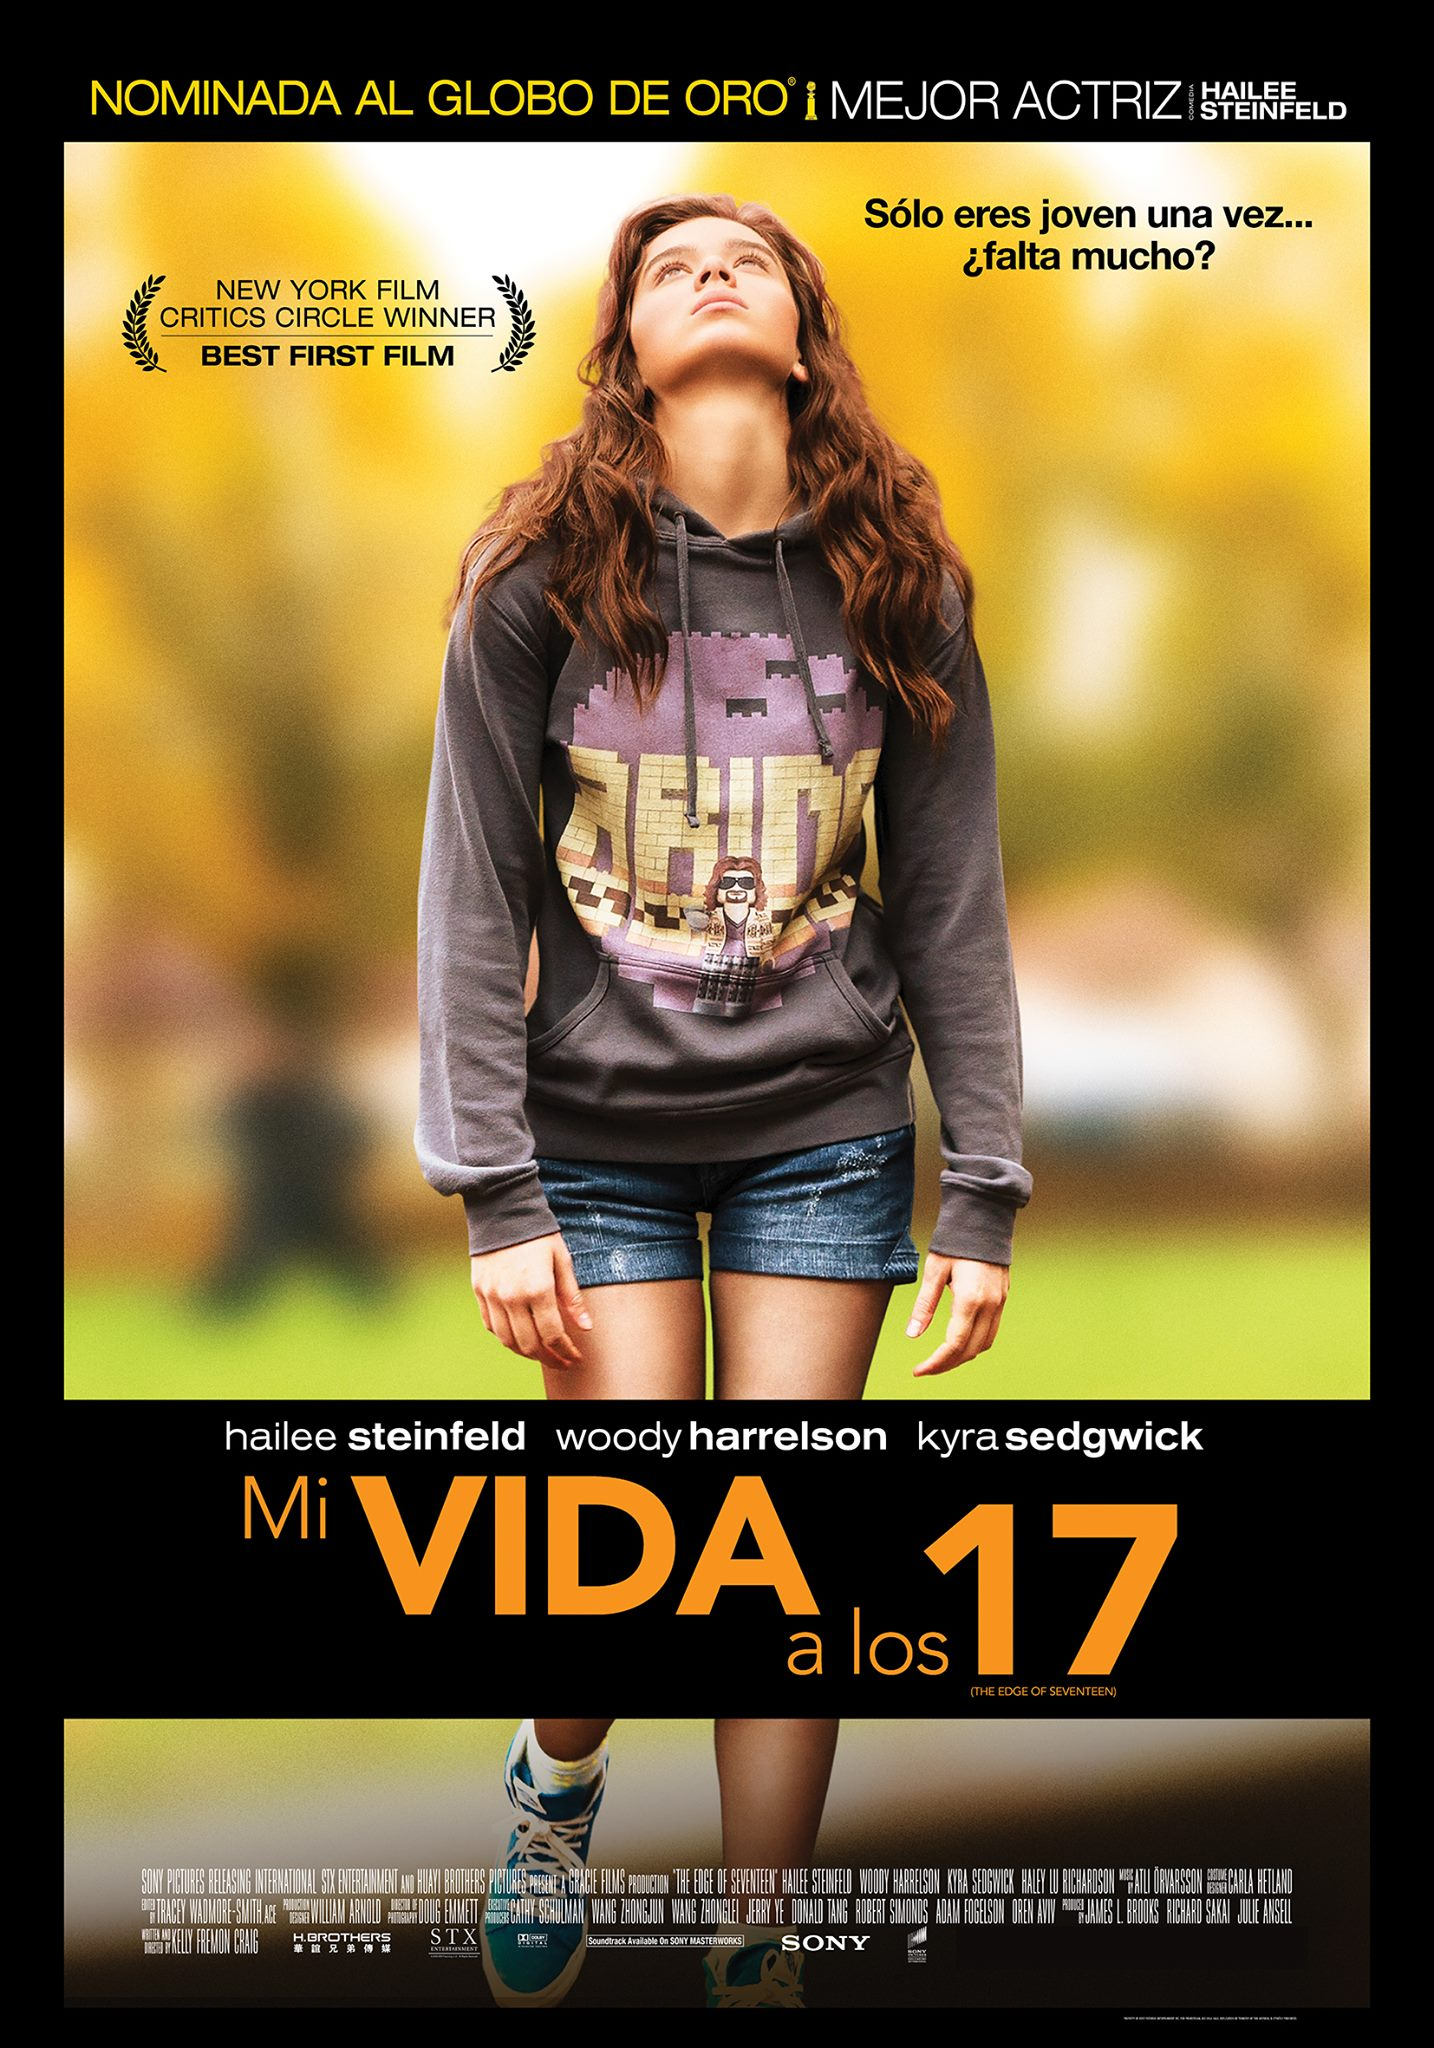 Mi vida a los 17 | Doblaje Wiki | FANDOM powered by Wikia